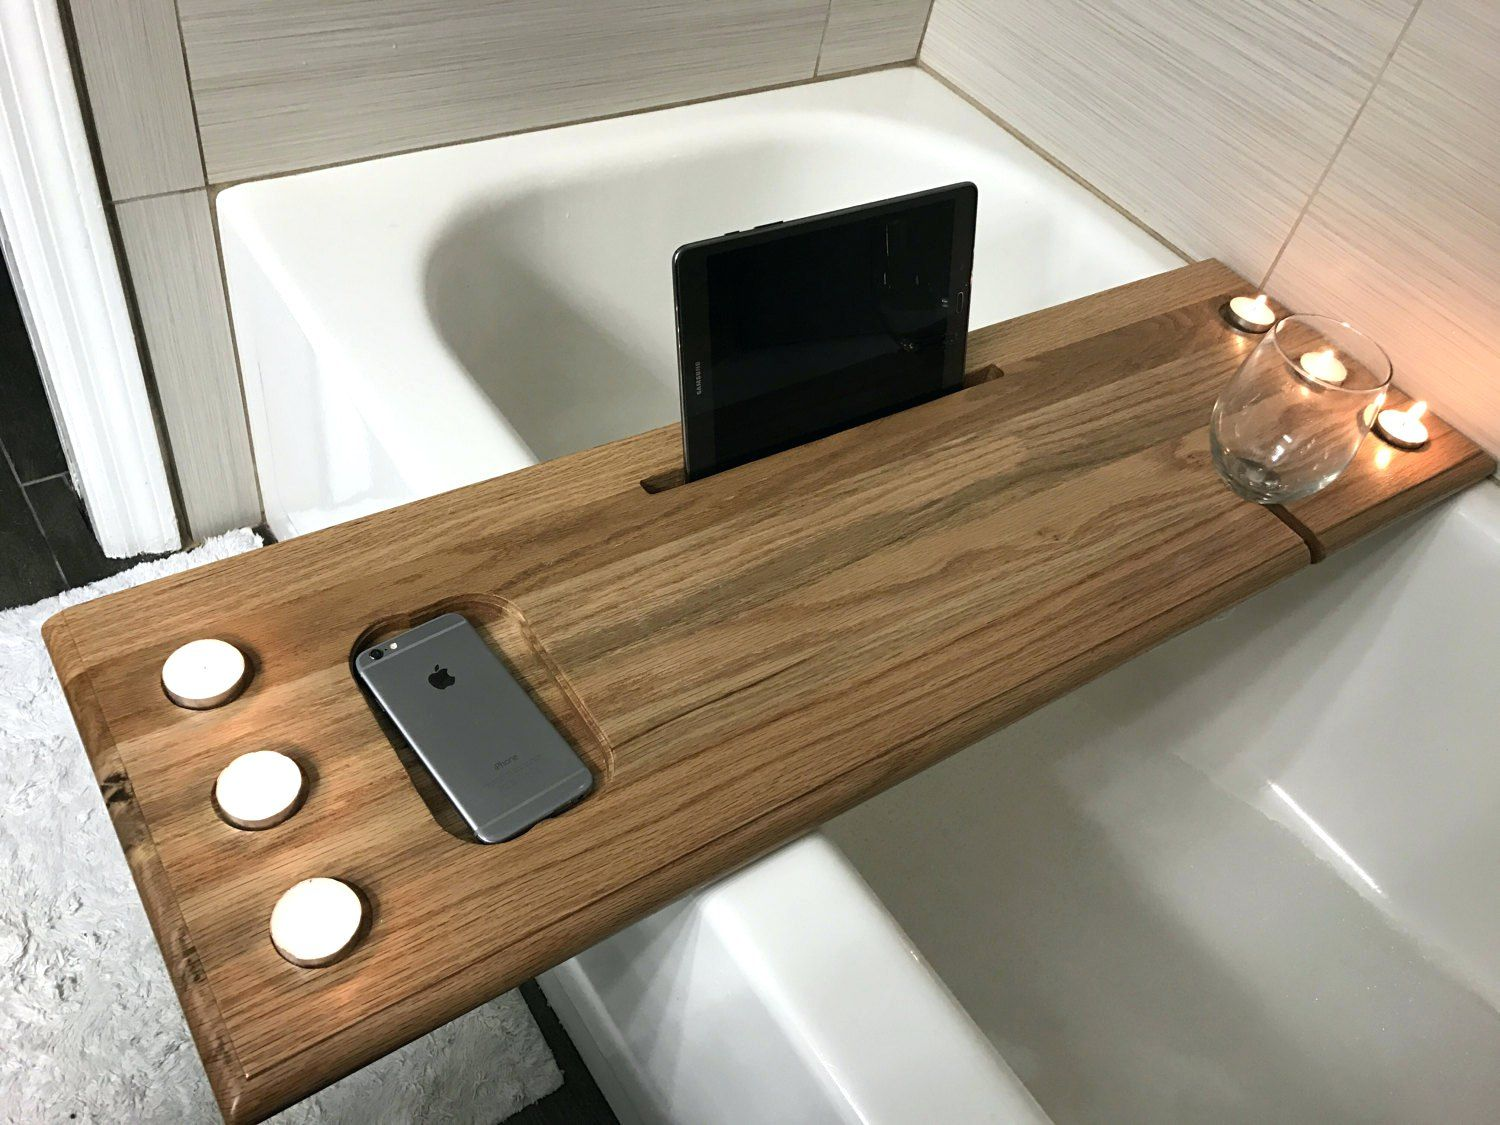 Bathtub Wine Holder Over The Tub Bath Caddy Bathtub Caddy Wood ...